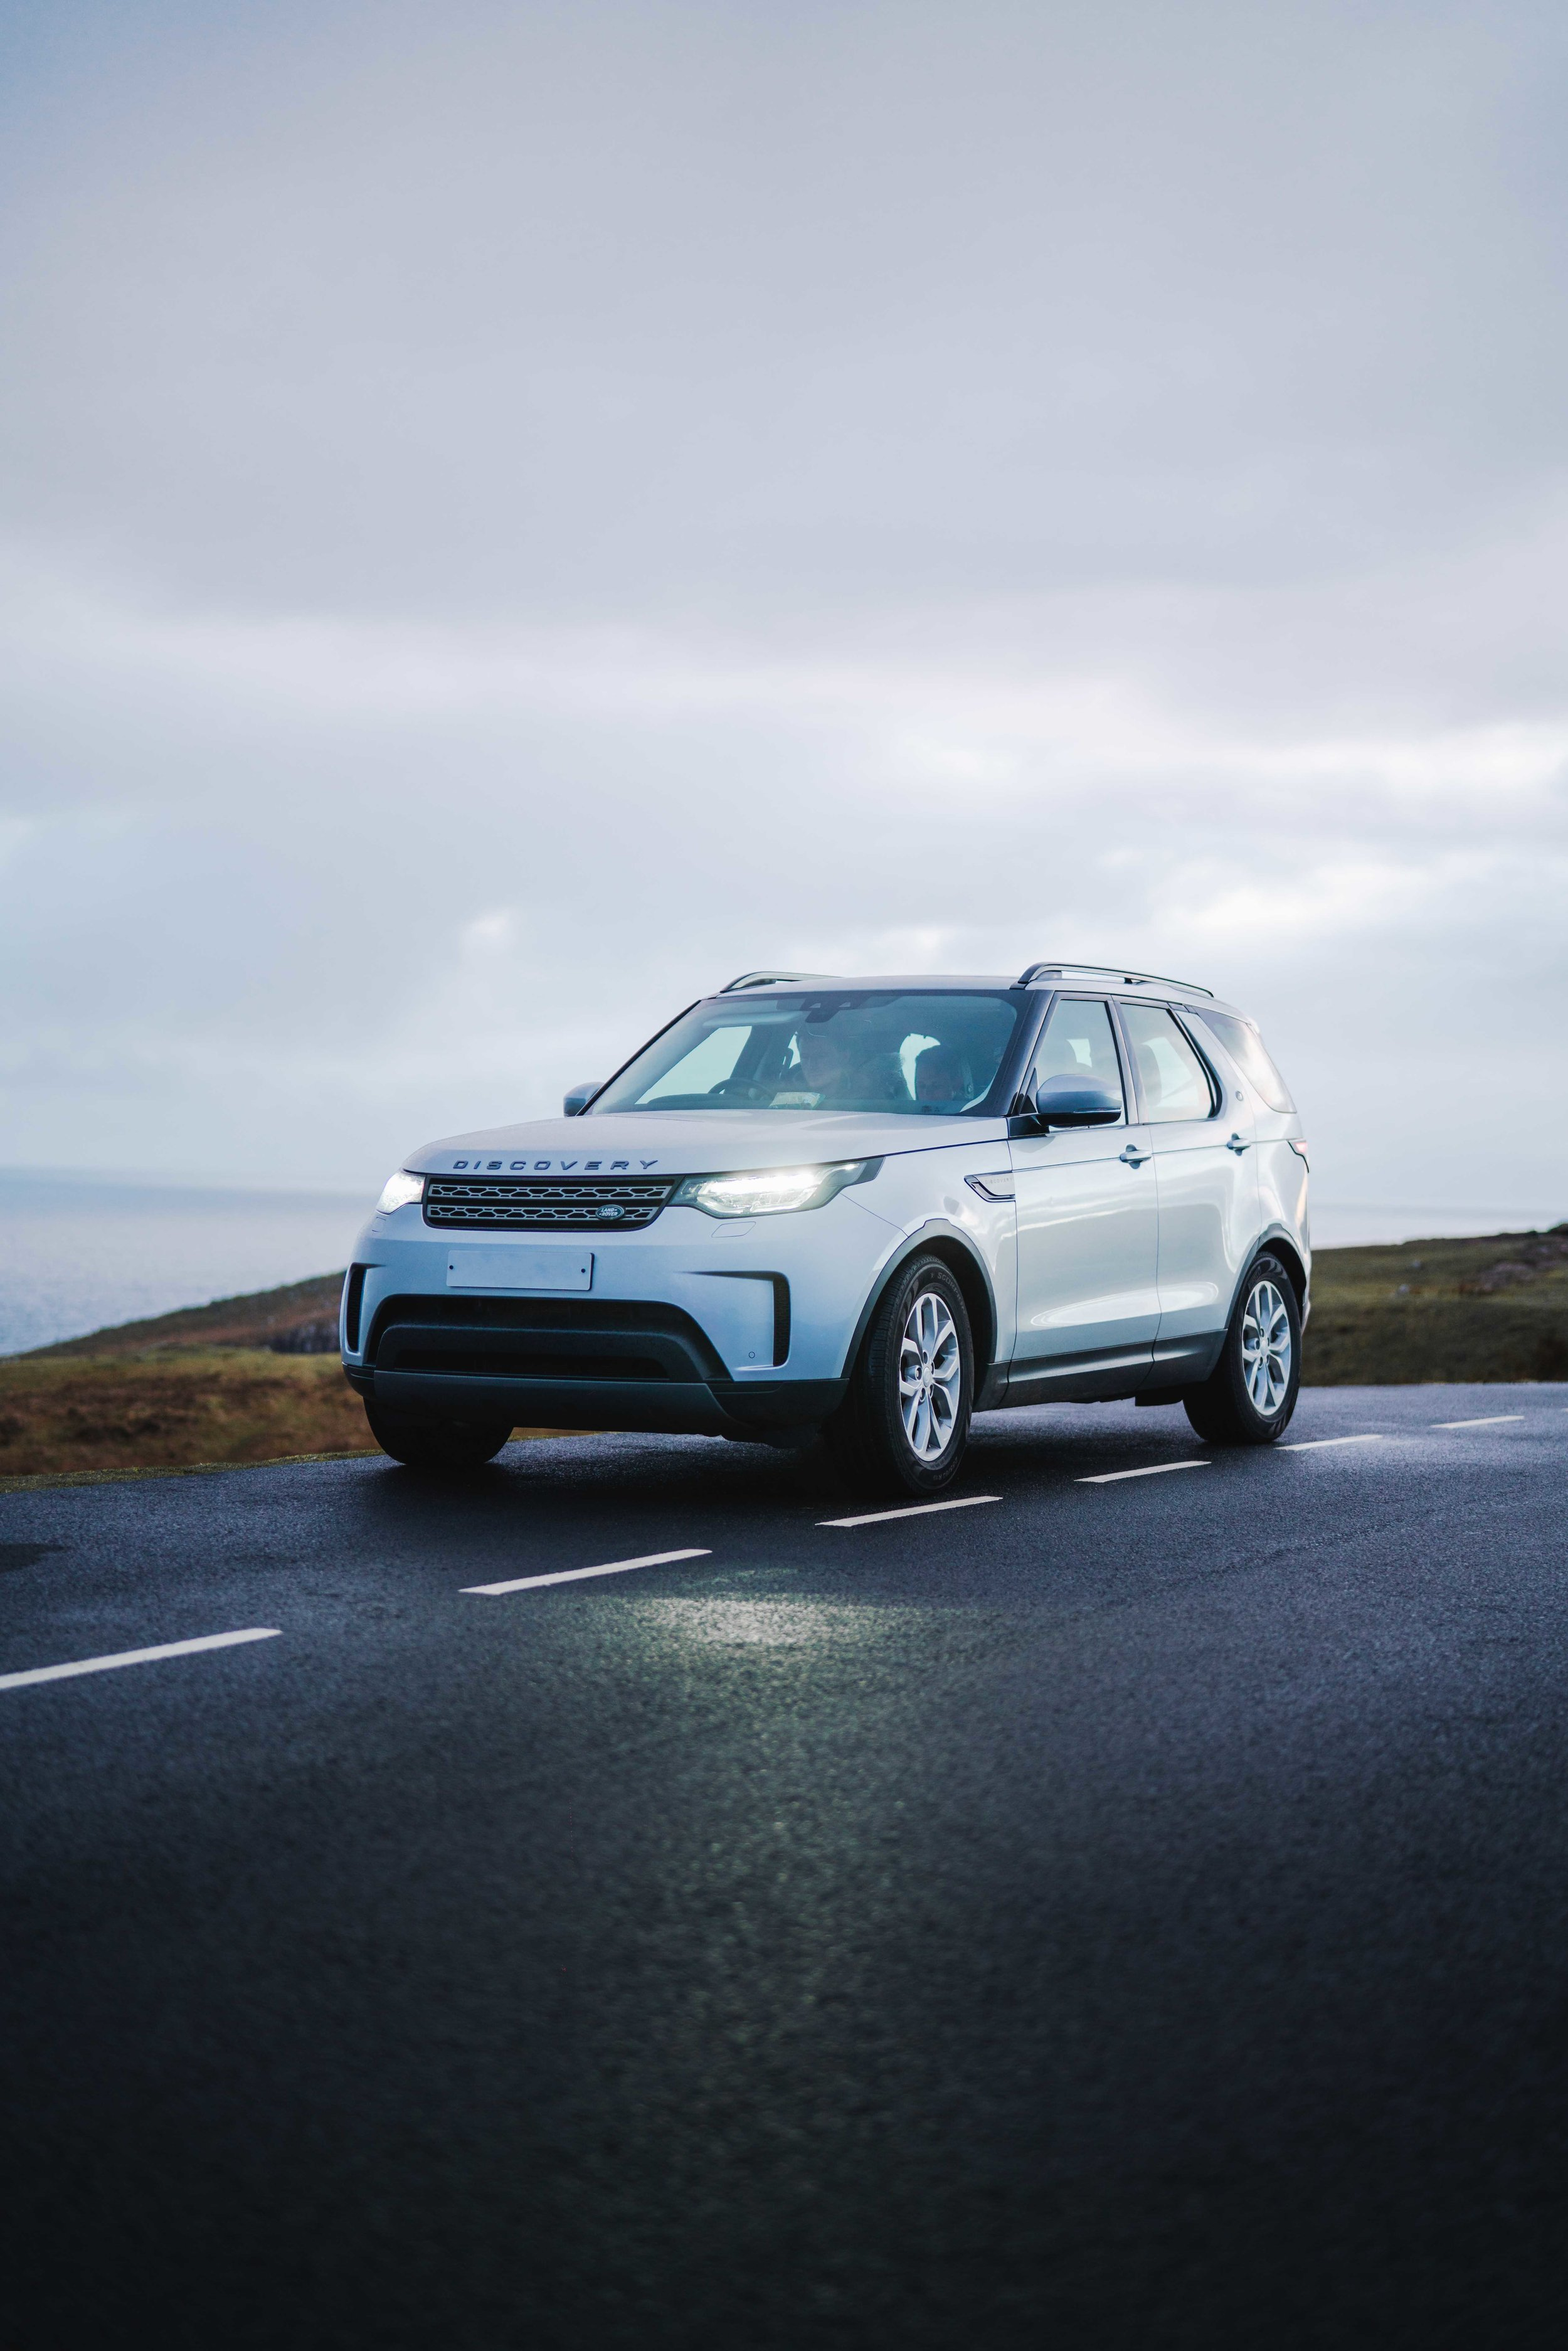 Land Rover Discovery in Scotland on the road.